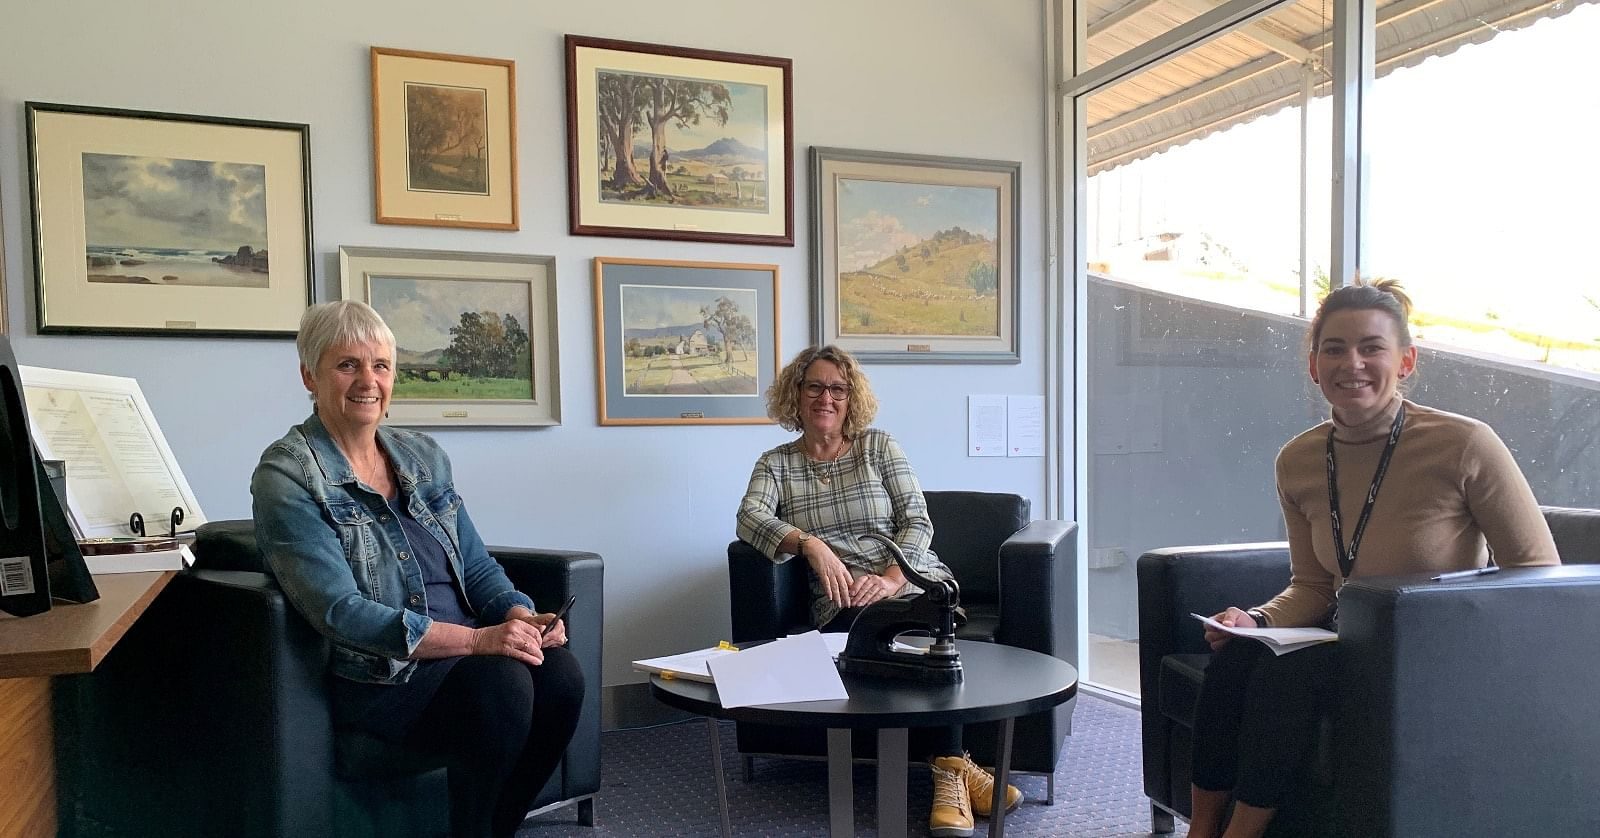 Photo: General Manager Leanne Barnes, Mayor Sharon Tapscott and Property & Facilities Coordinator Rickee Marshall oversee the settlement of the Australasia sale.